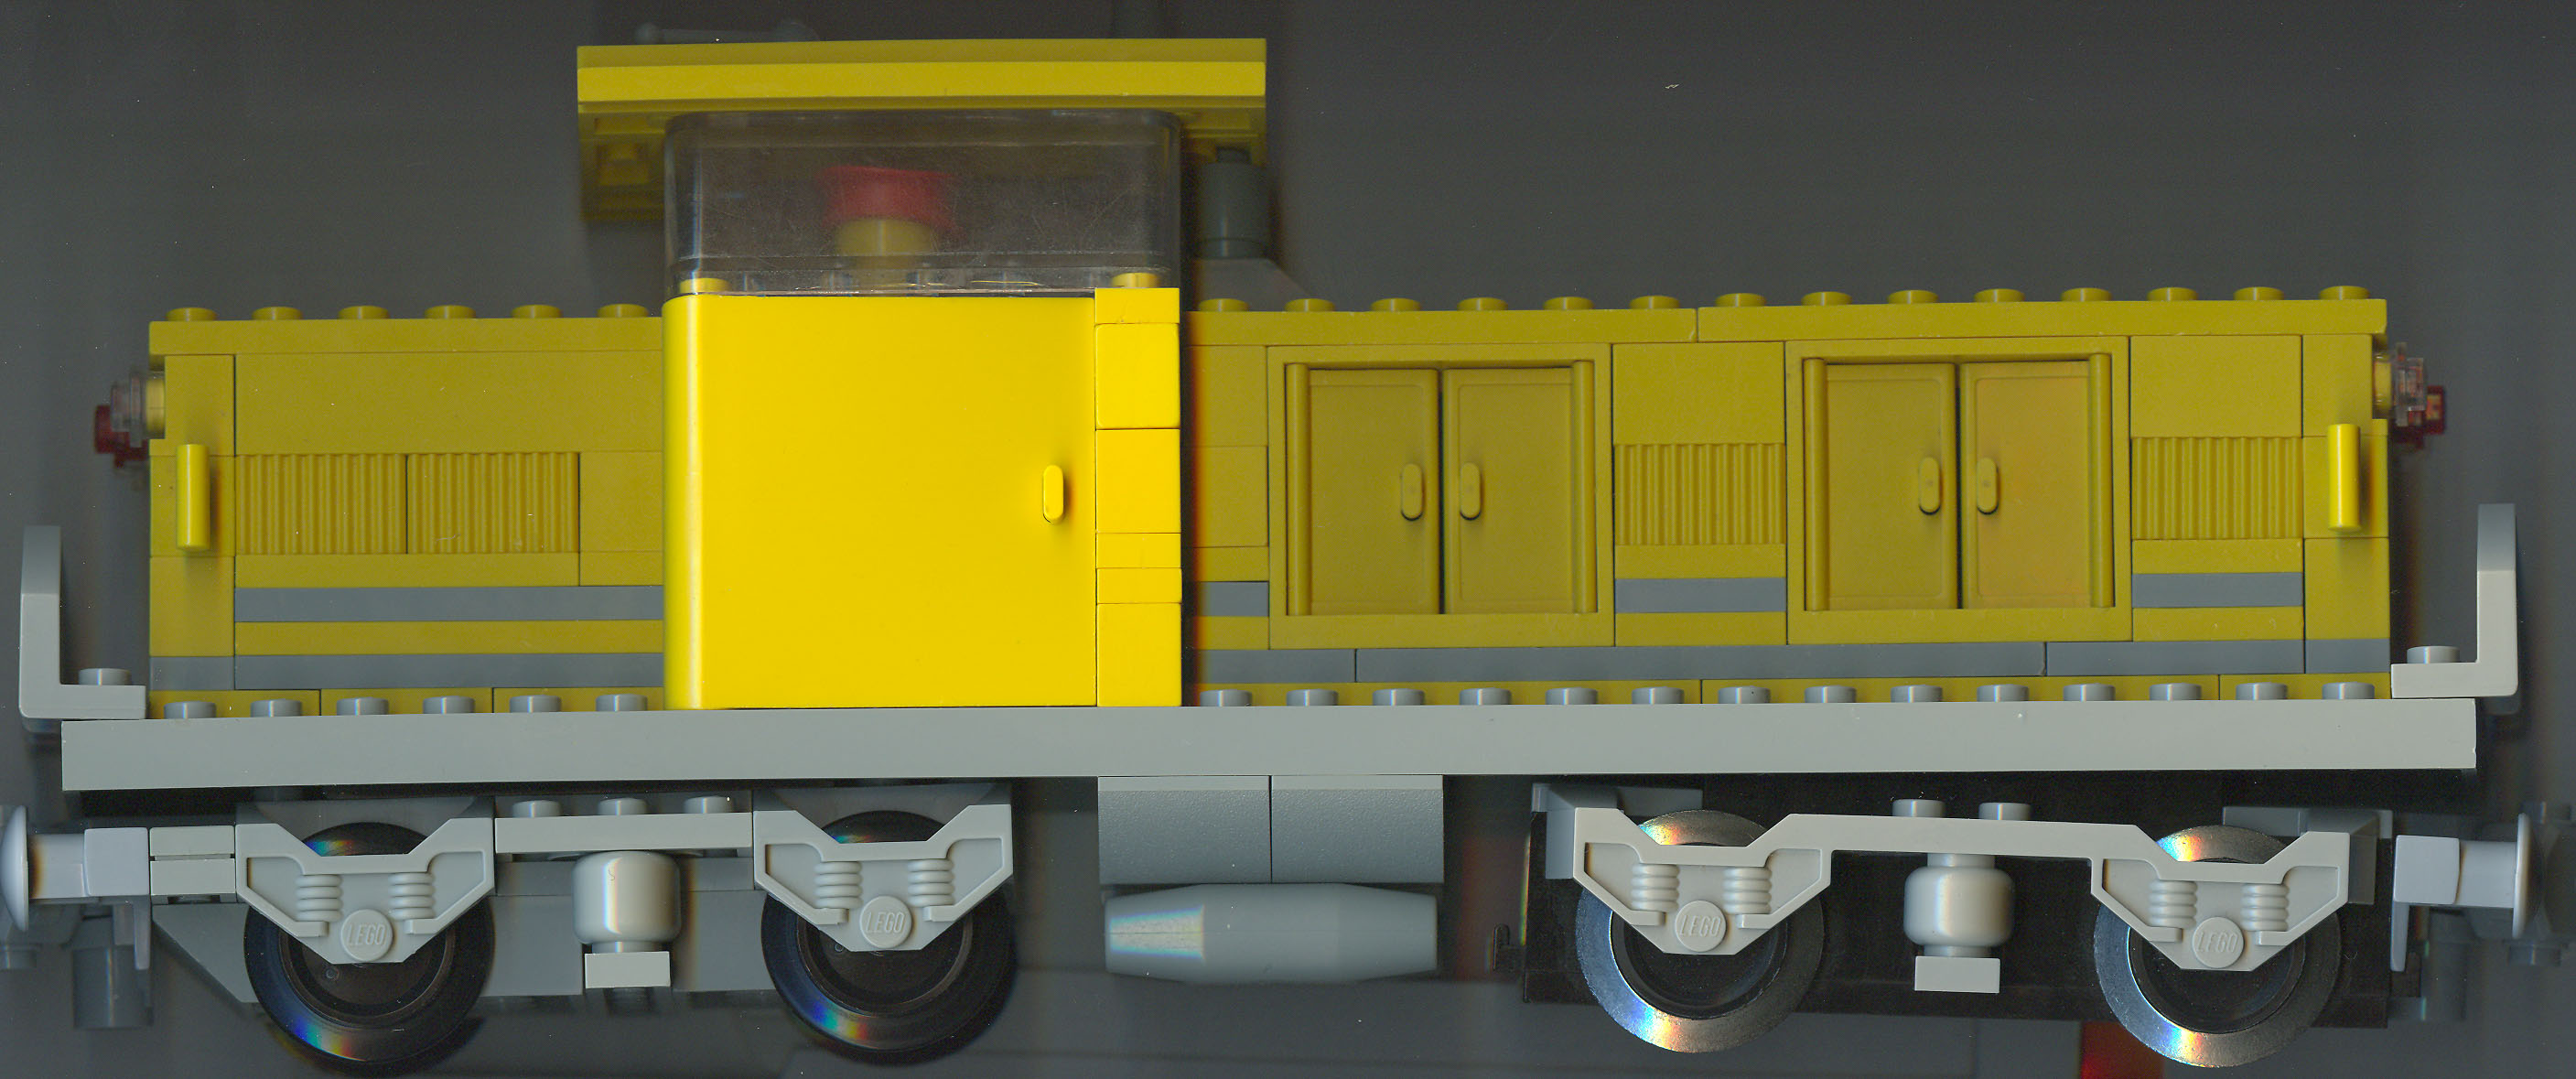 custom_diesel_train.jpg